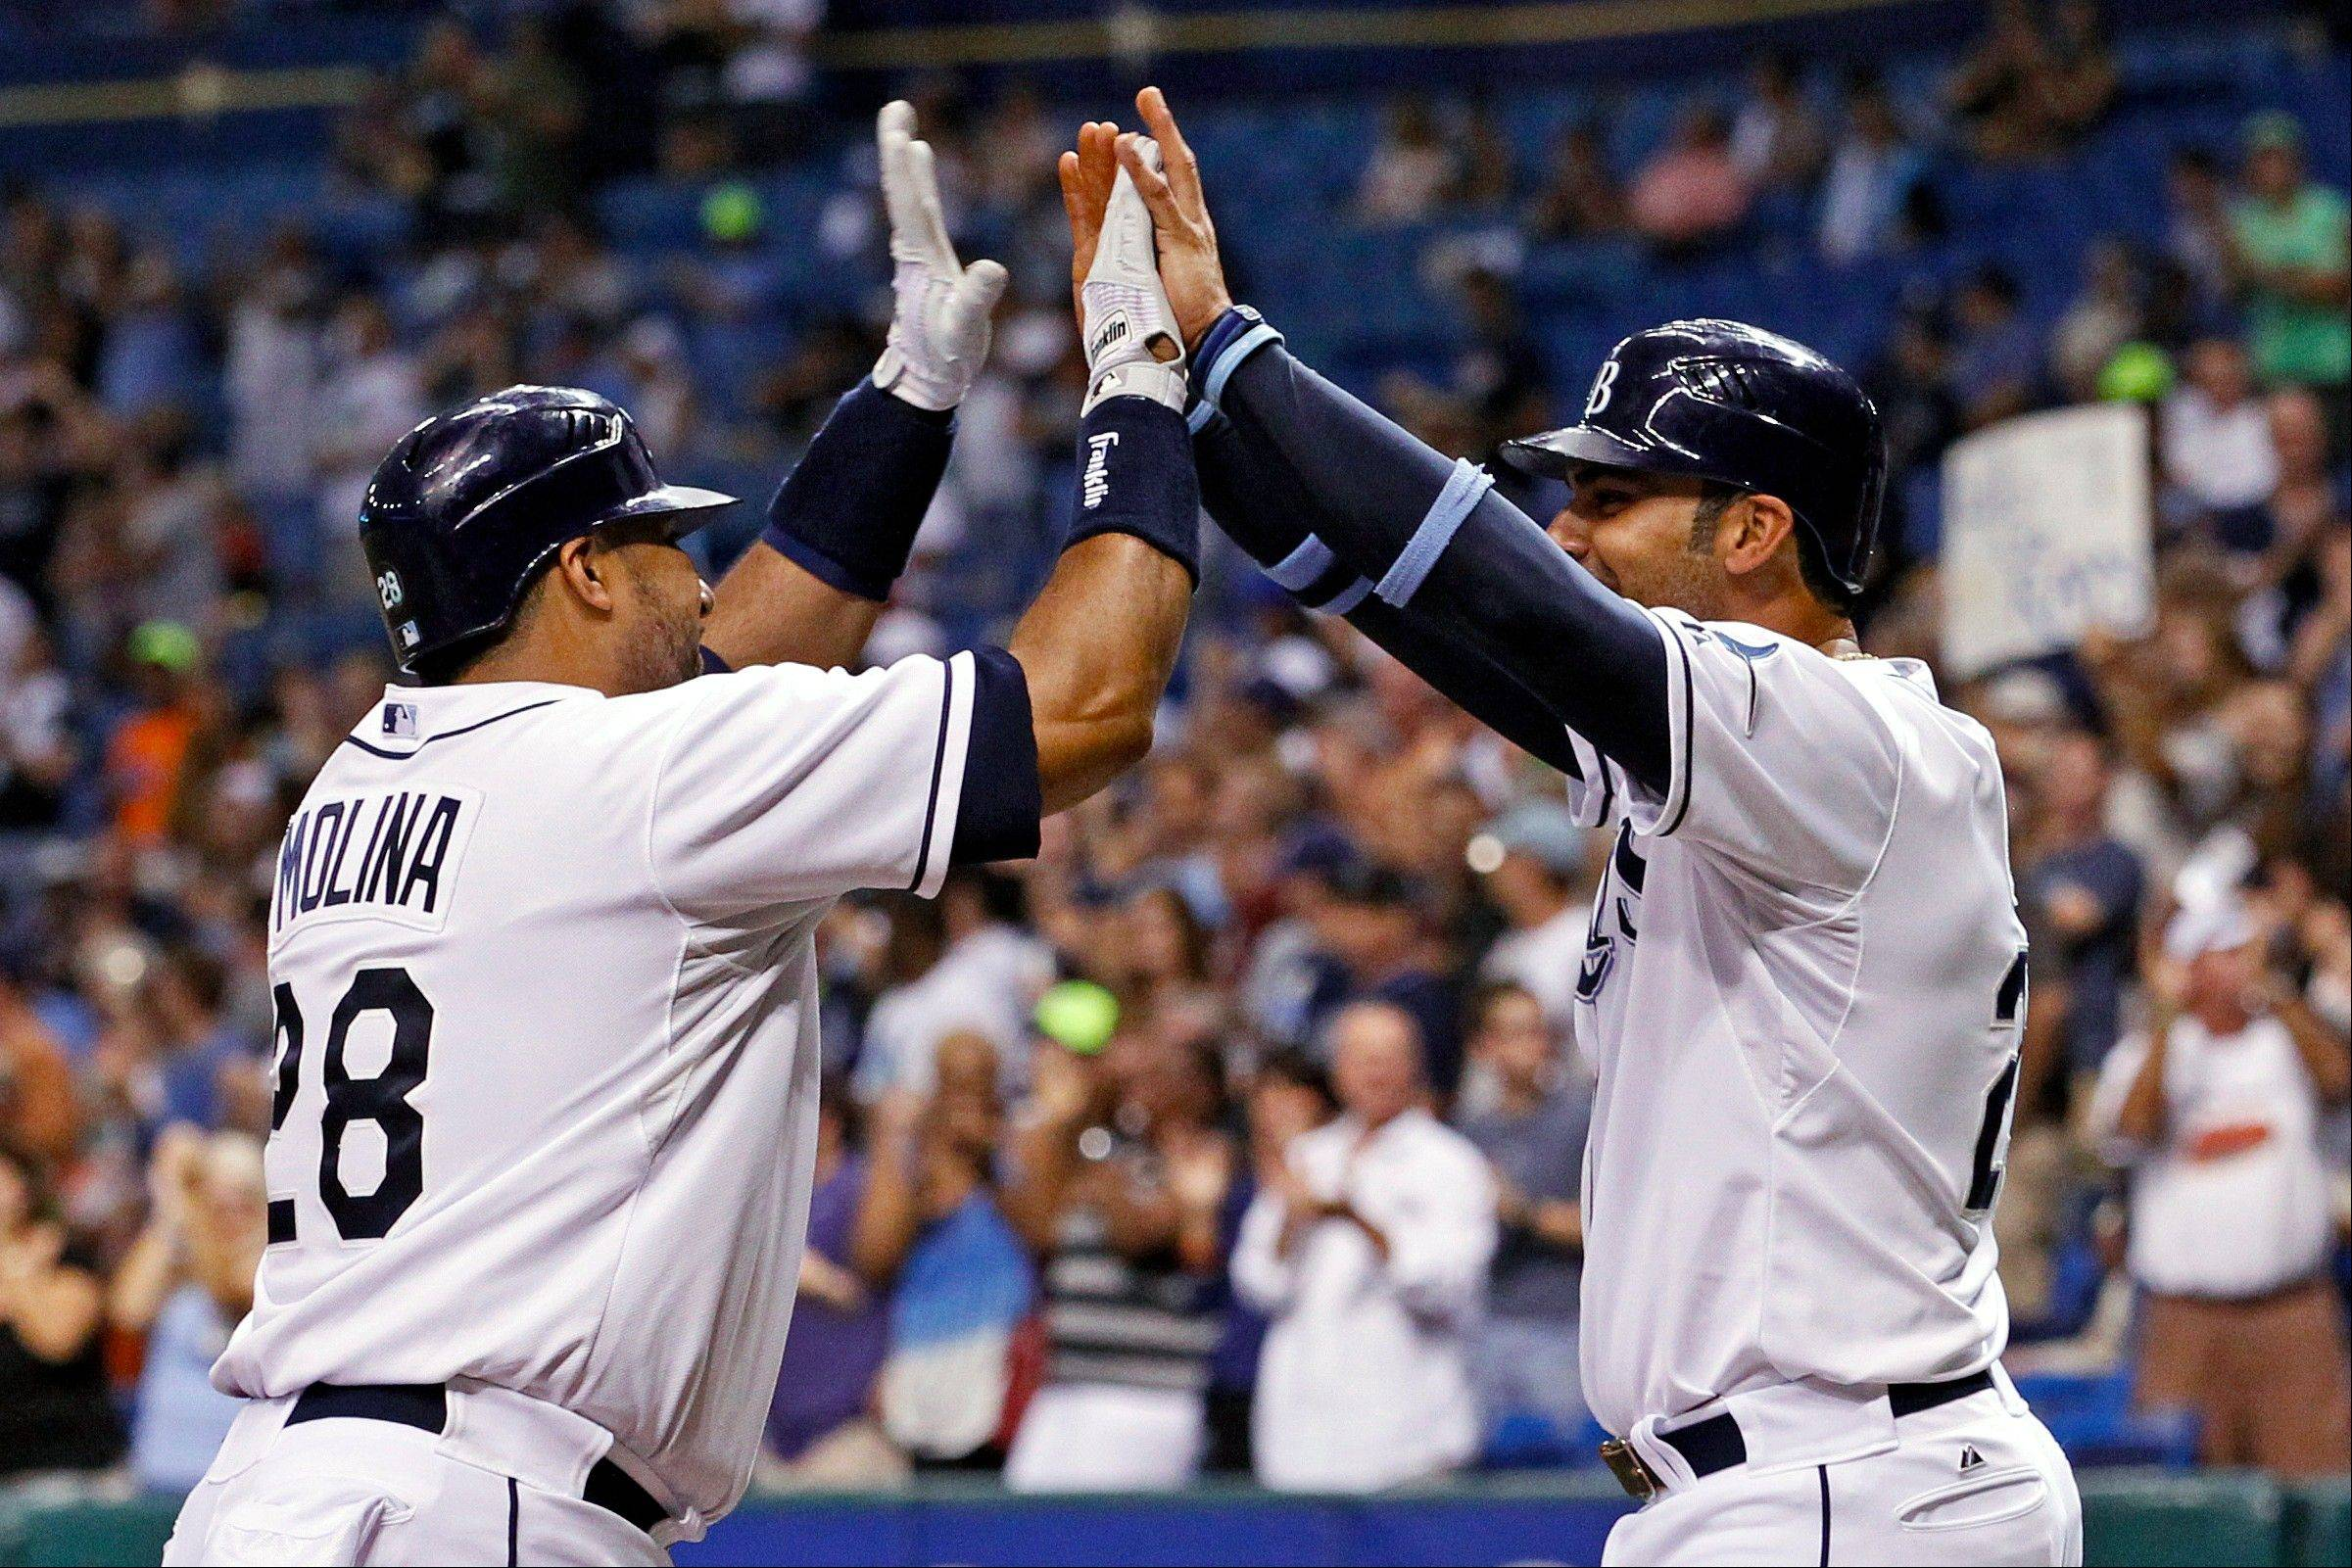 Tampa Bay's Jose Molina, left, is congratulated by teammate Carlos Pena after his two-run home run during the second inning Friday against Toronto in St. Petersburg, Fla.